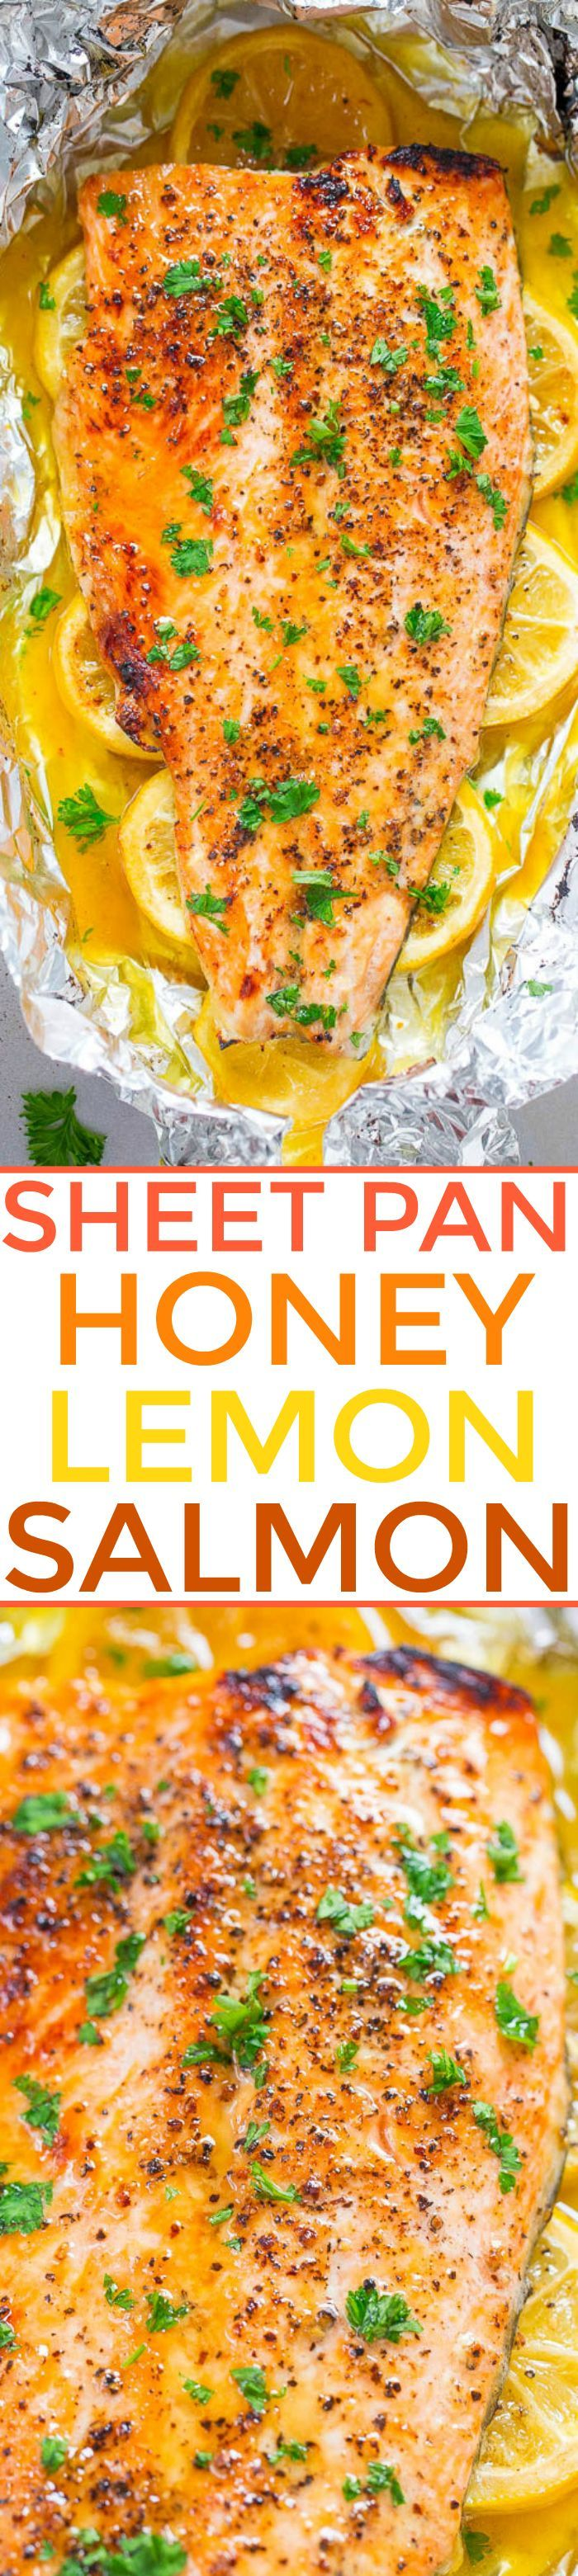 Sheet Pan Honey Lemon Salmon - Make salmon at home in 30 minutes that tastes BETTER than from a restaurant!! EASY, tender, and packed with FLAVOR from the honey and lemon butter!!